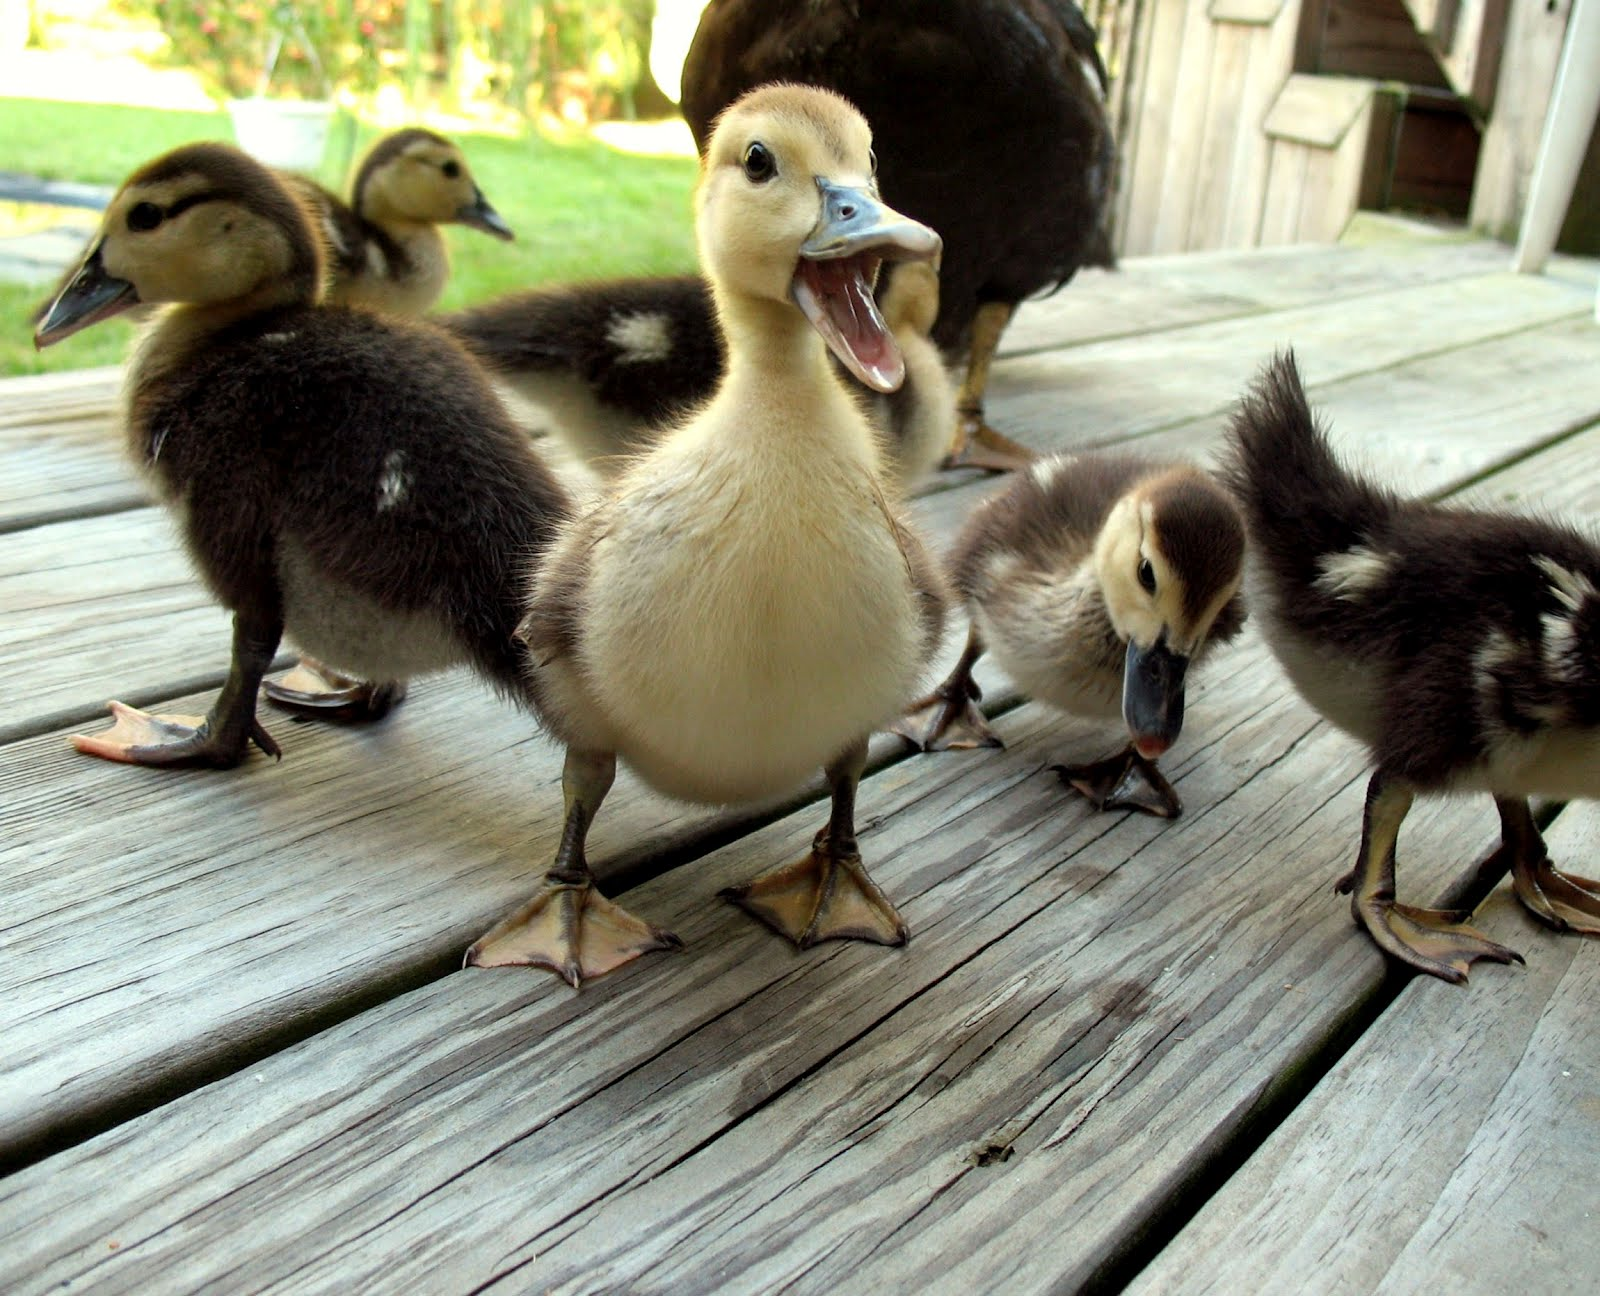 30 extremely adorable baby animals 30 pics amazing creatures